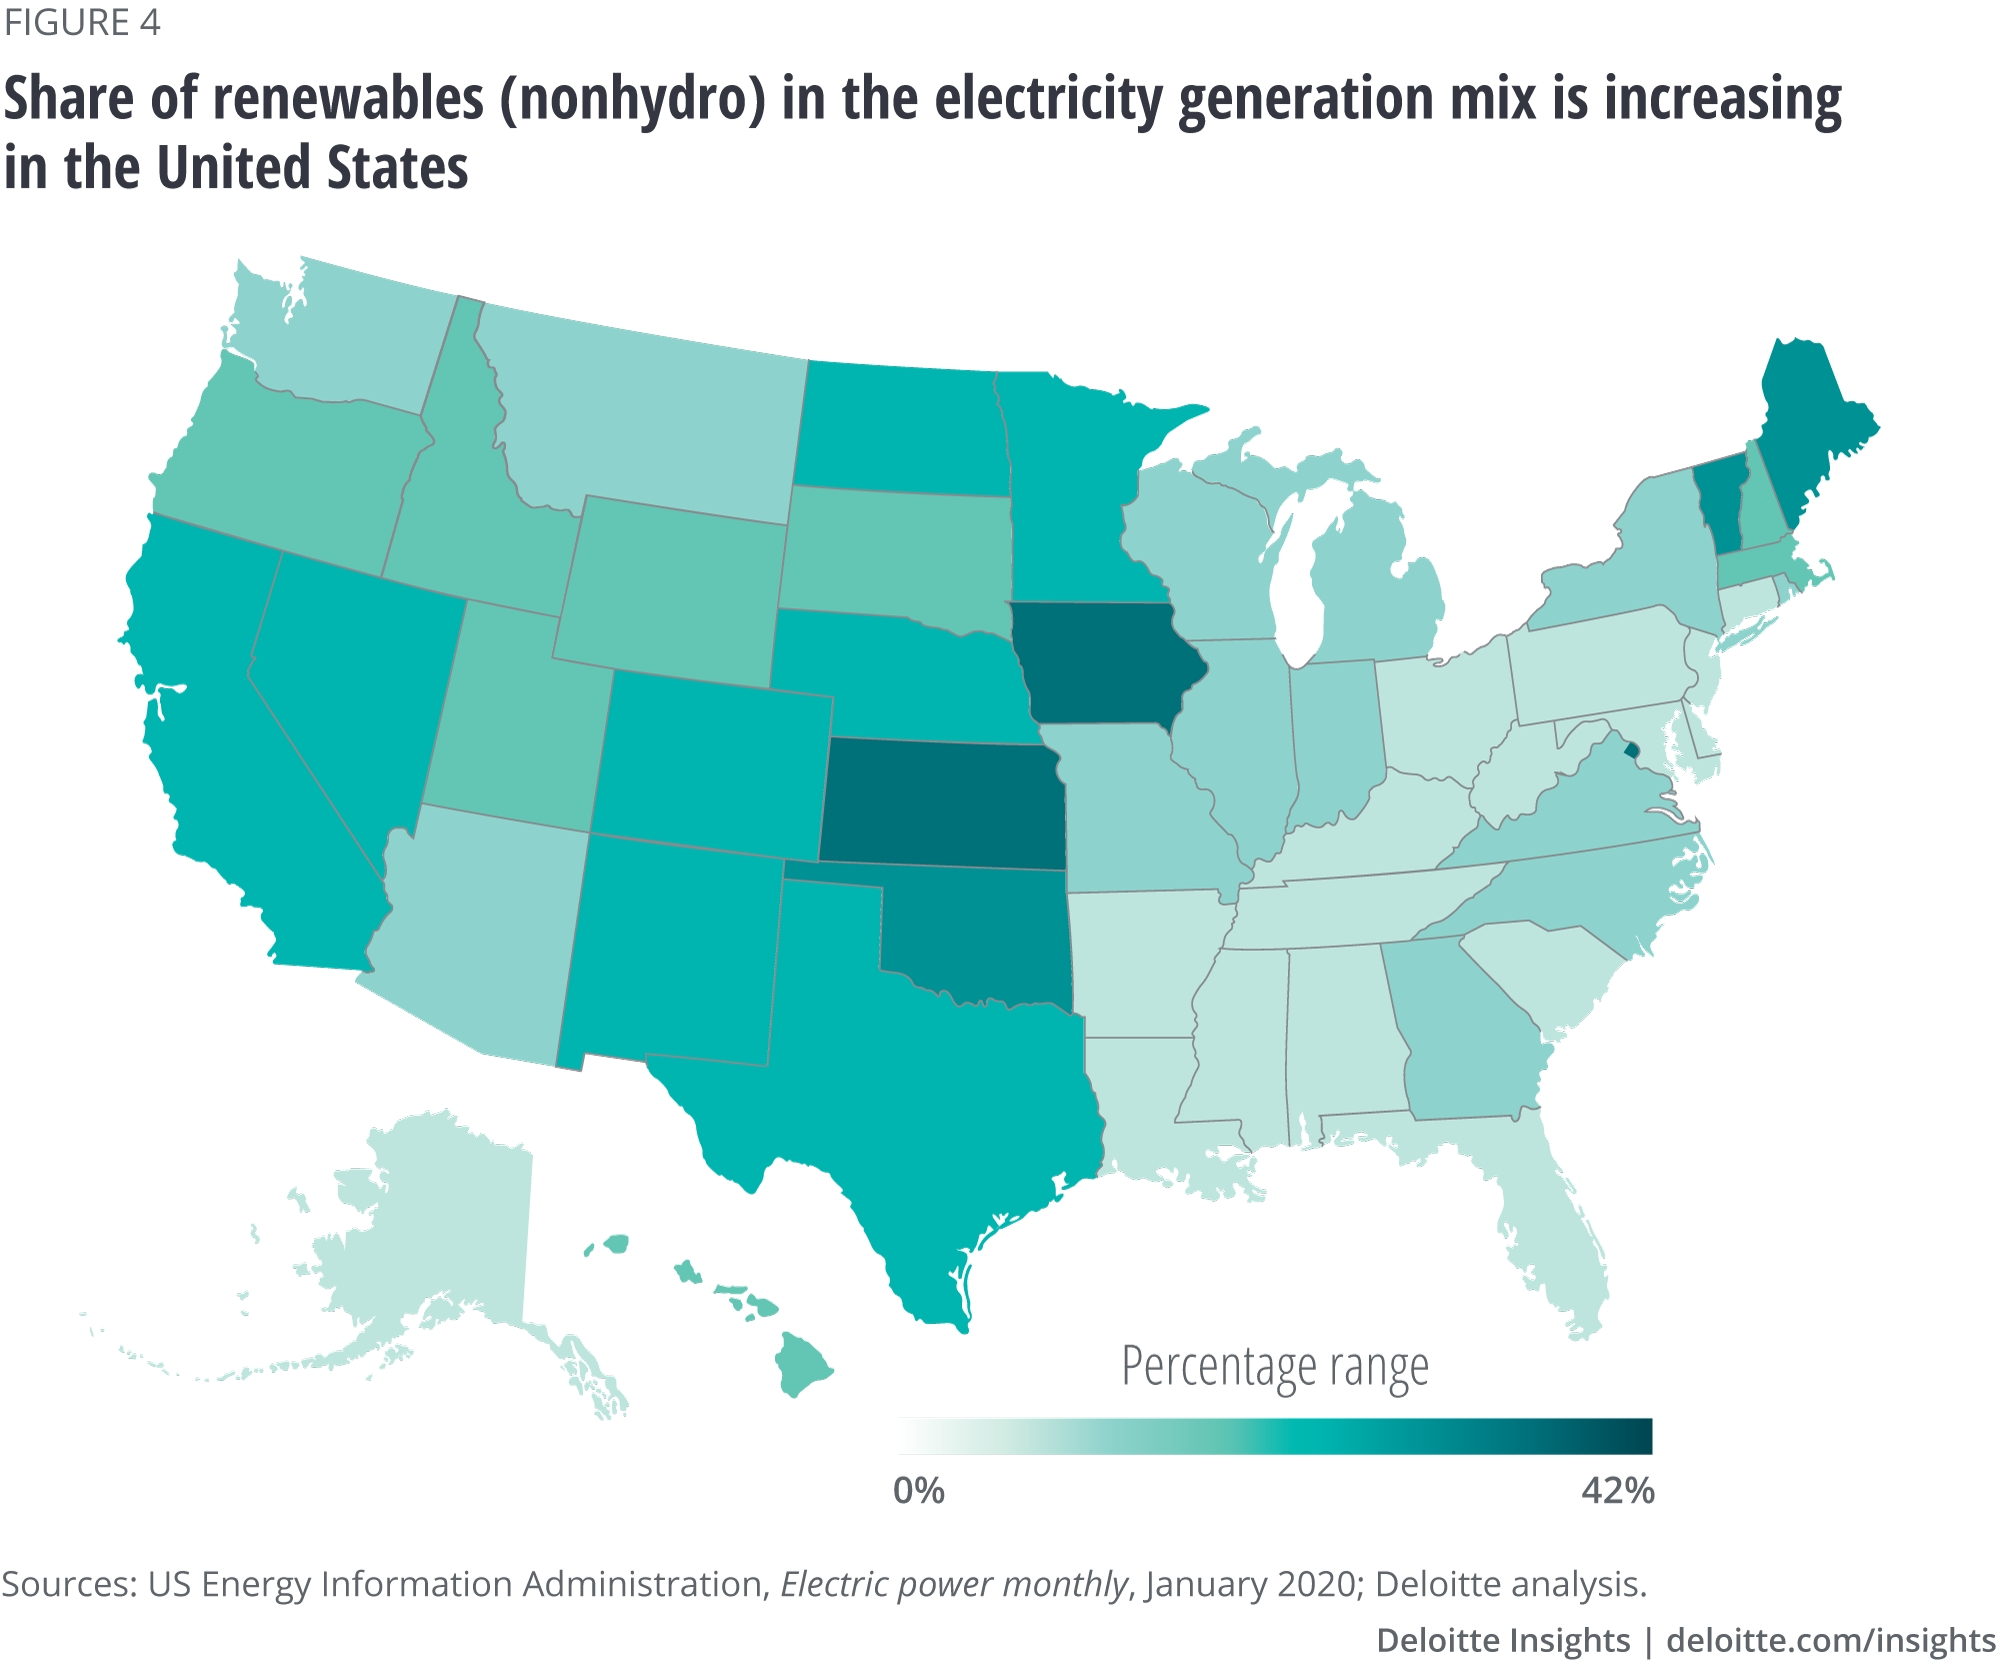 Share of renewables (nonhydro) in the electricity generation mix is increasing in the United States